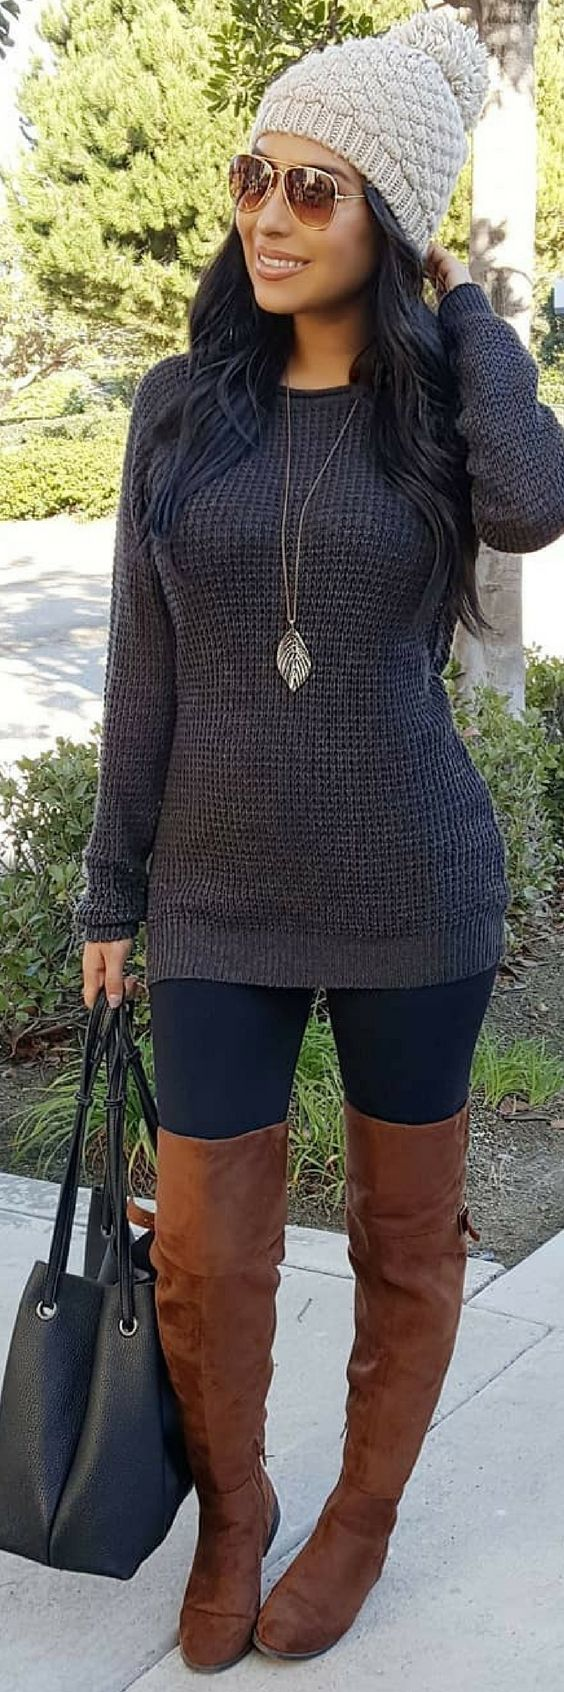 How To Style 10 Of The Most Charming Winter Outfits https://ecstasymodels.blog/2017/12/19/style-10-charming-winter-outfits/